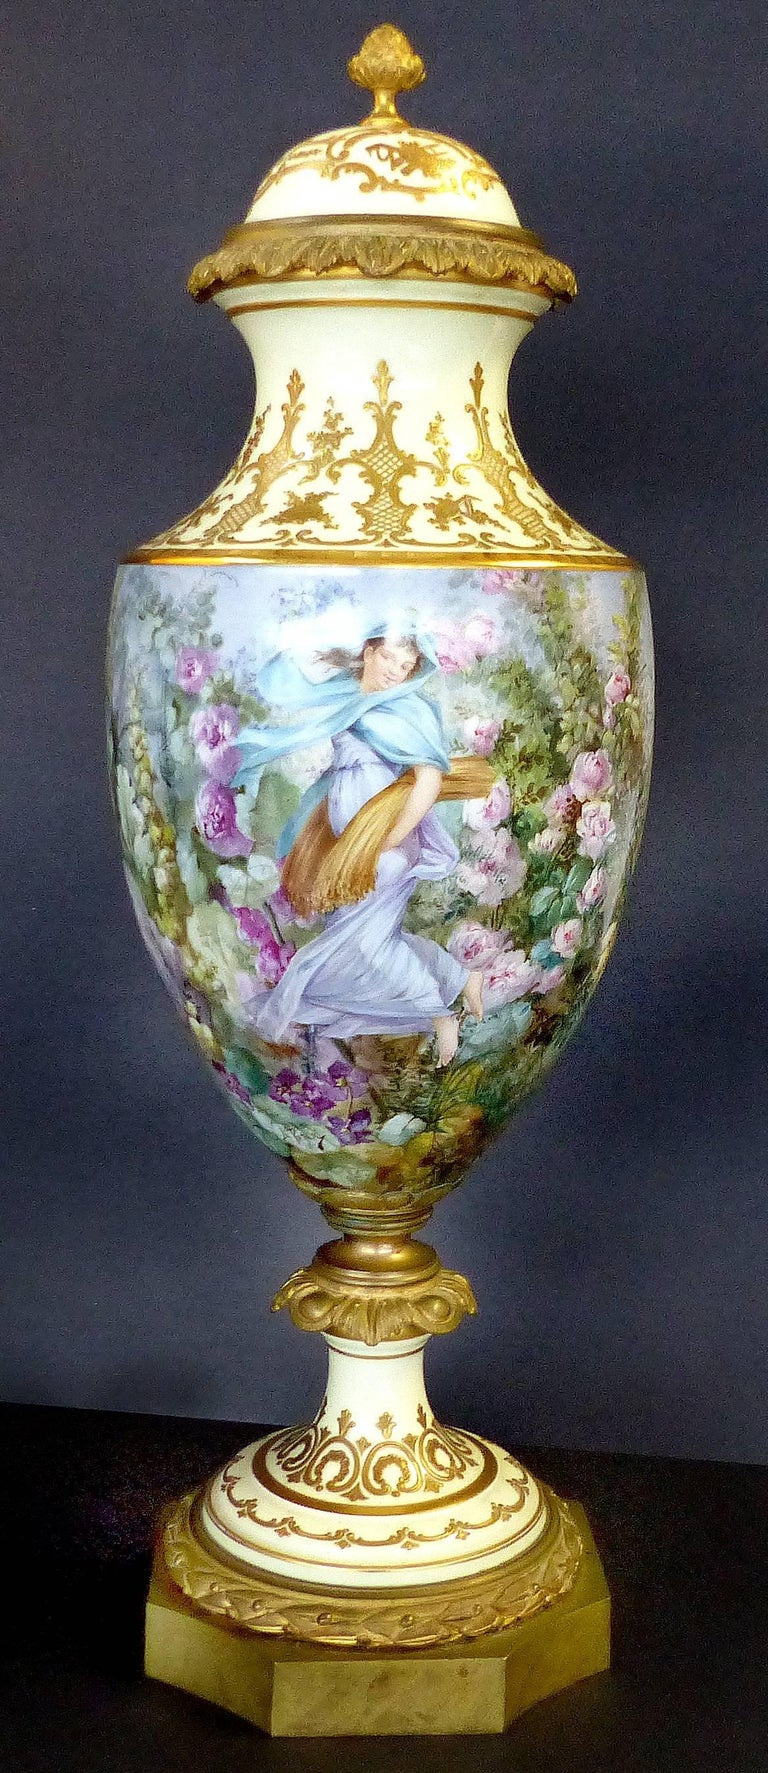 Offered is a fine Sevres hand-painted covered urn signed L. Pater. This gilt bronze mounted covered porcelain urn in three parts, beautifully painted with a harvest scene and elaborate floral designs. Artist signed within the design and marked